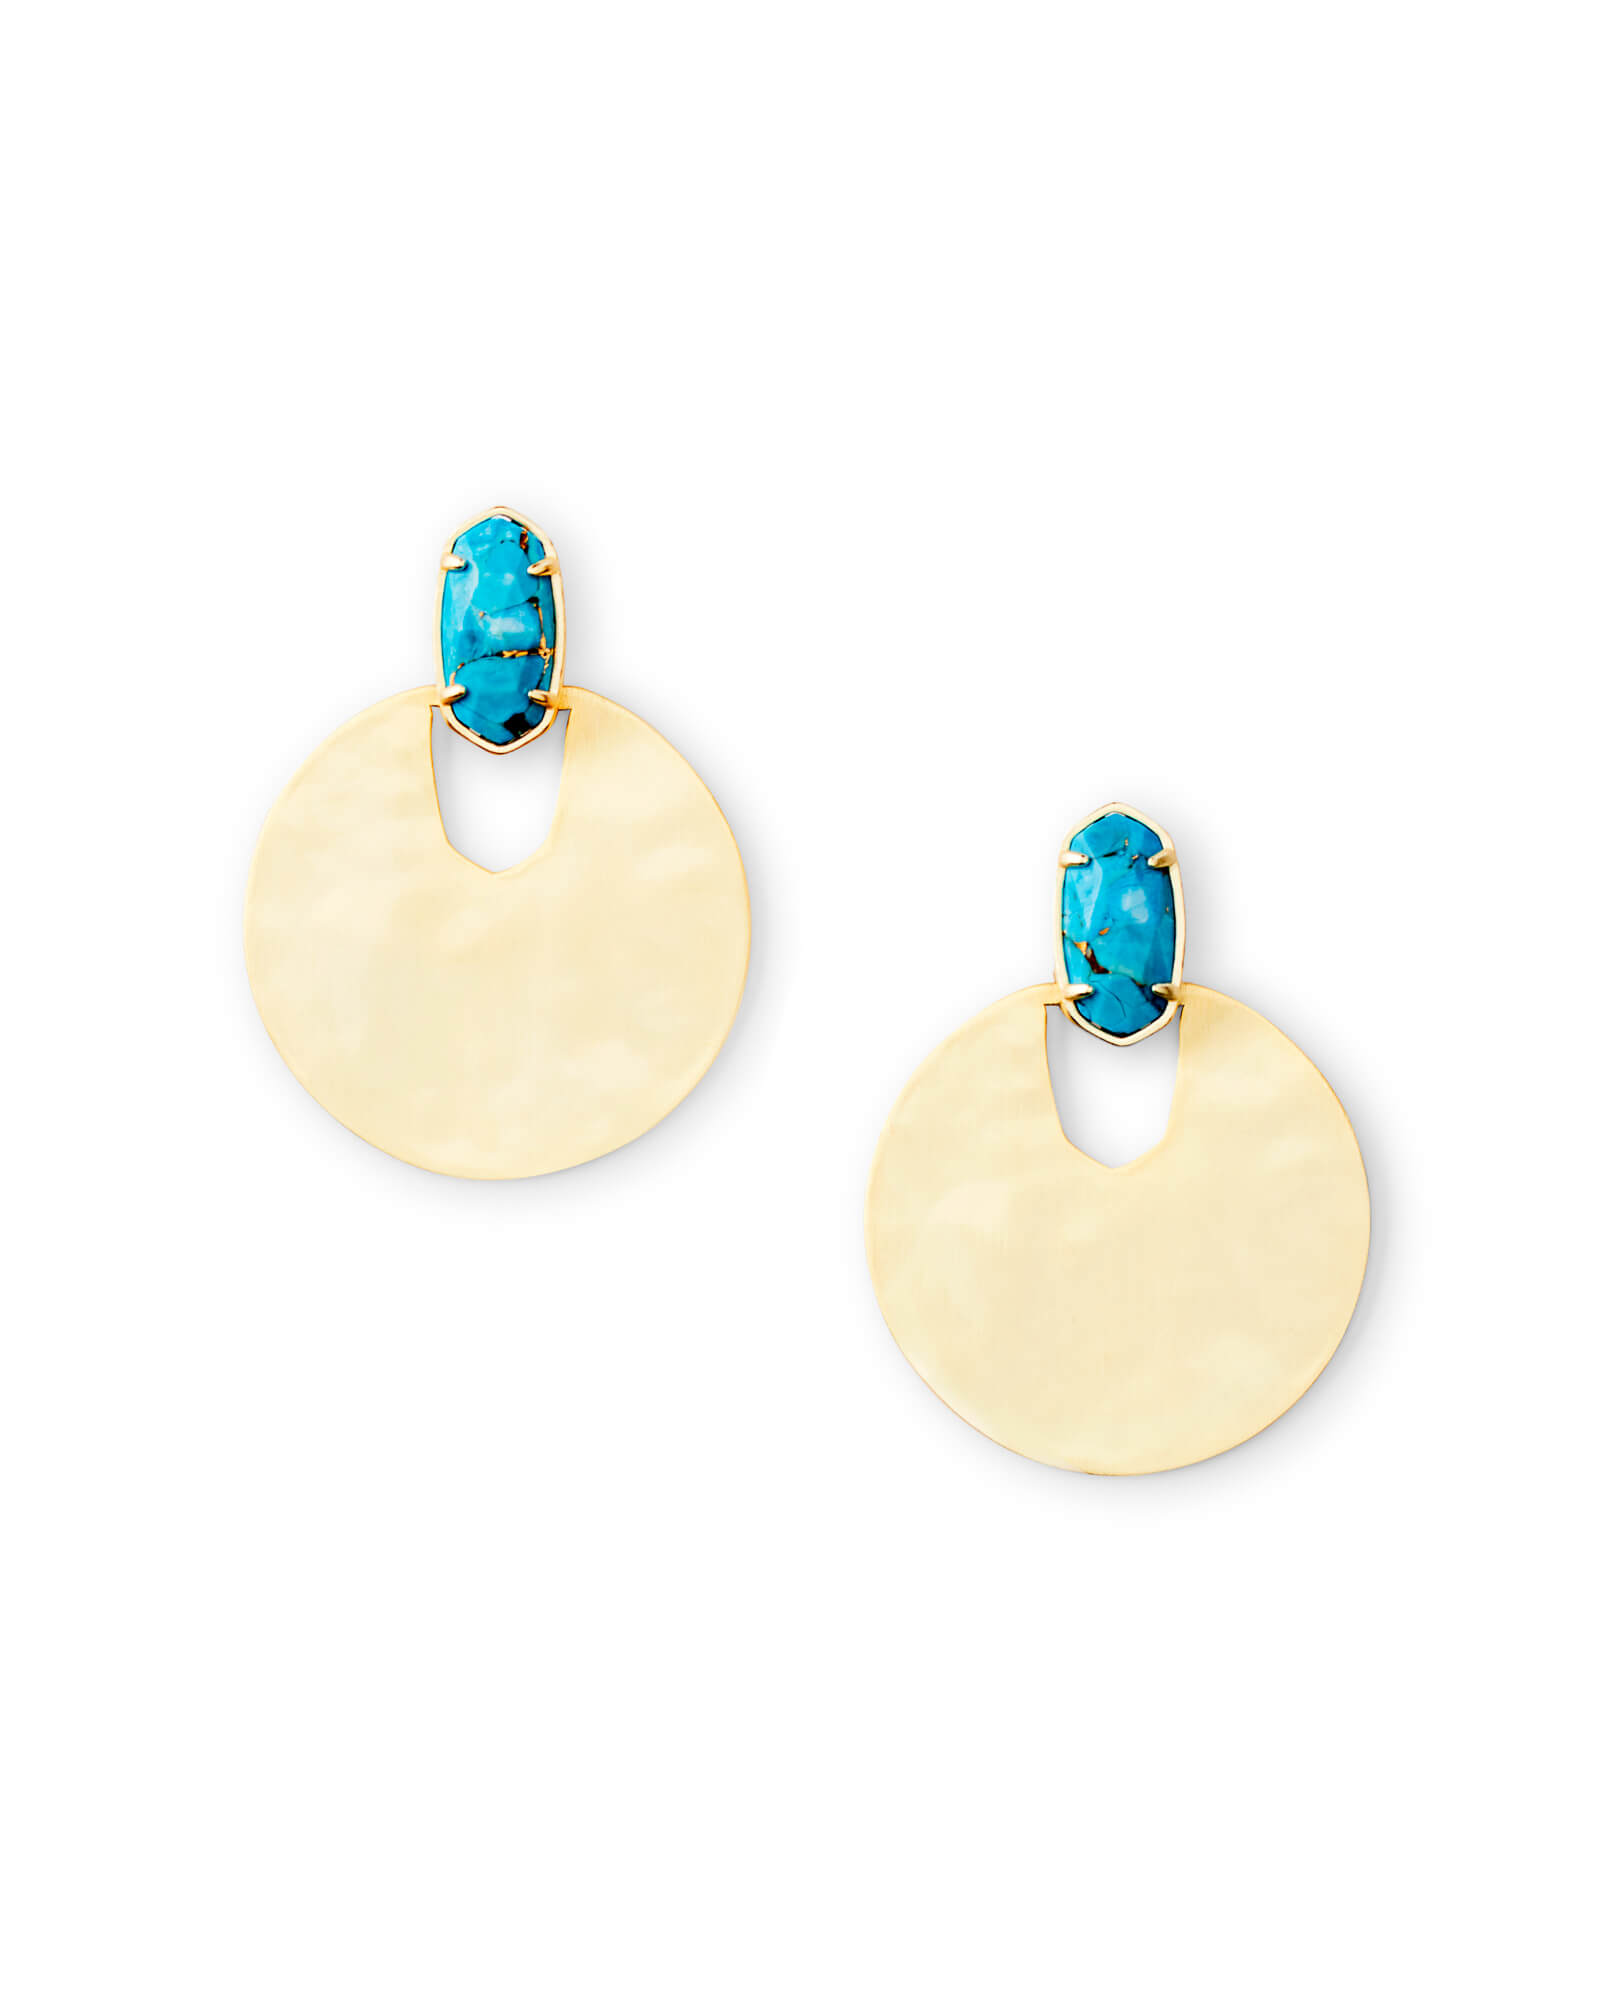 Deena Gold Drop Earrings in Bronze Veined Turquoise Magnesite